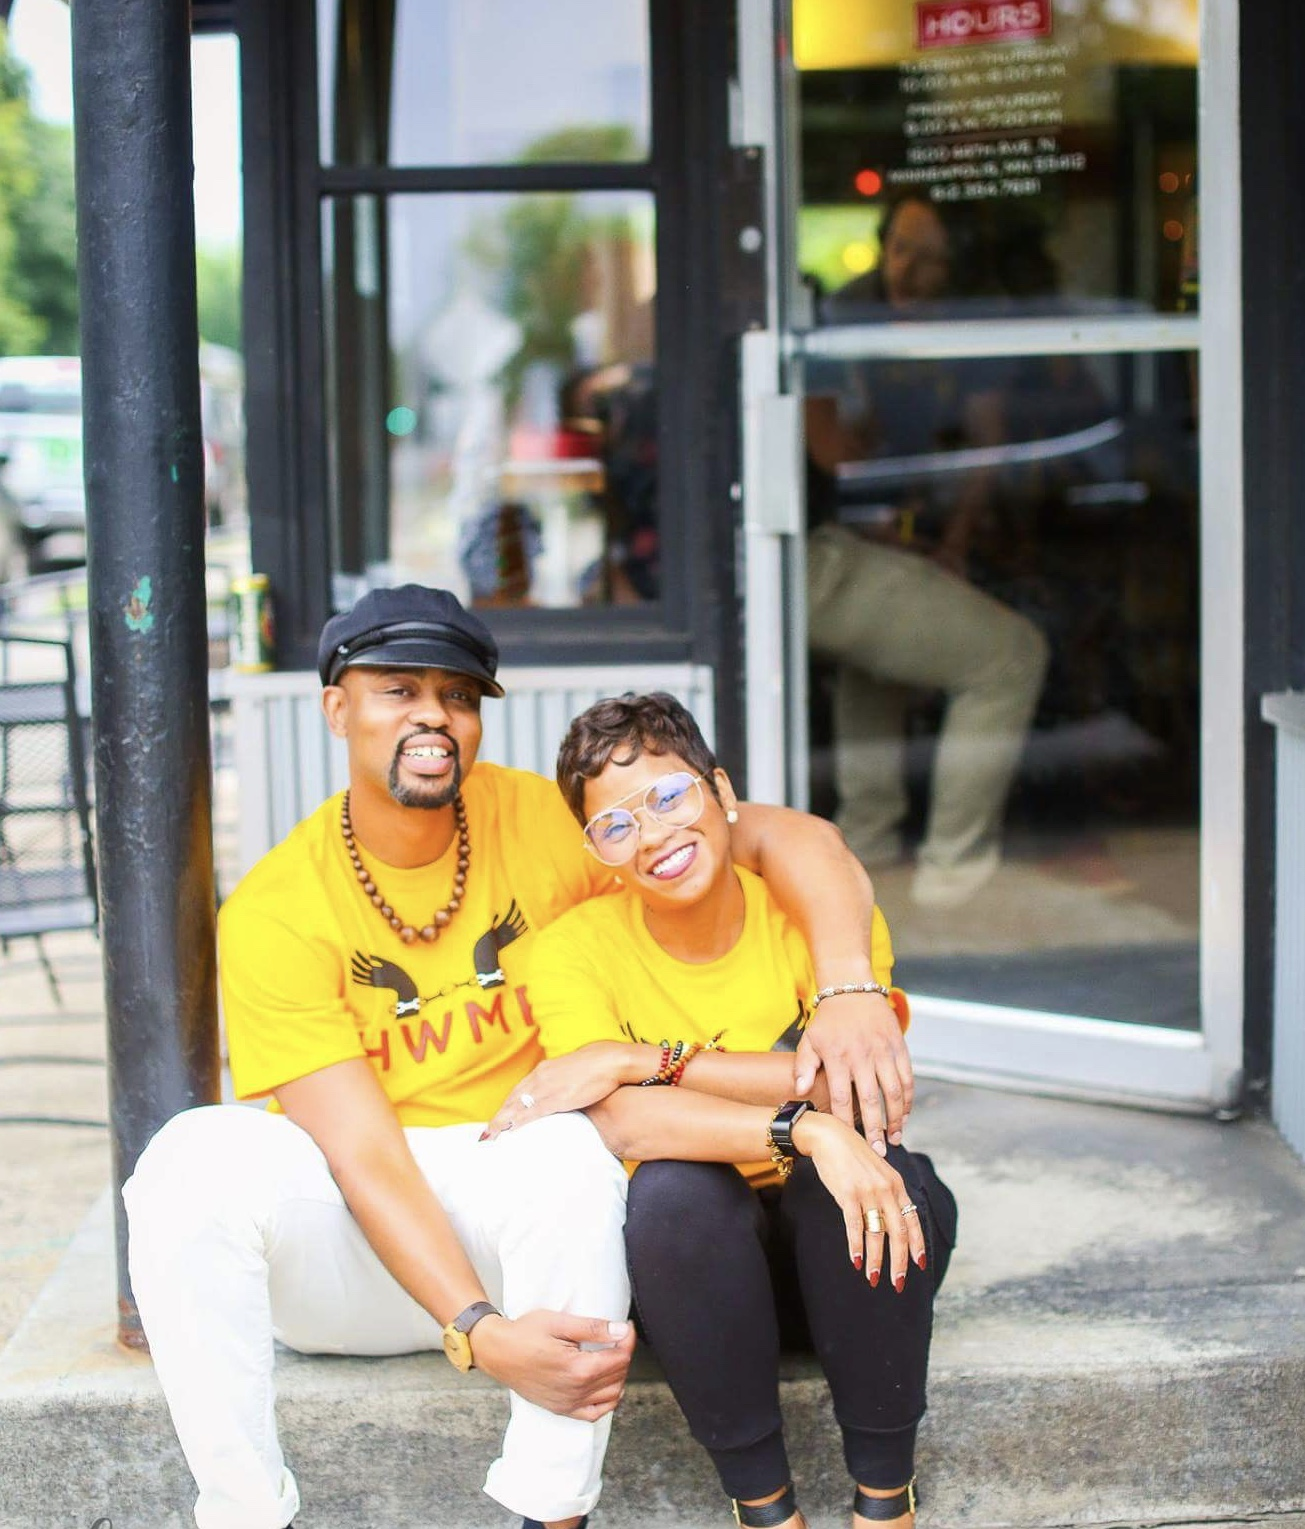 White and his wife Donise sit outside HWMR in warmer months. Donise inspired the women's clothing line at the shop.  Photo by Katherine Harris